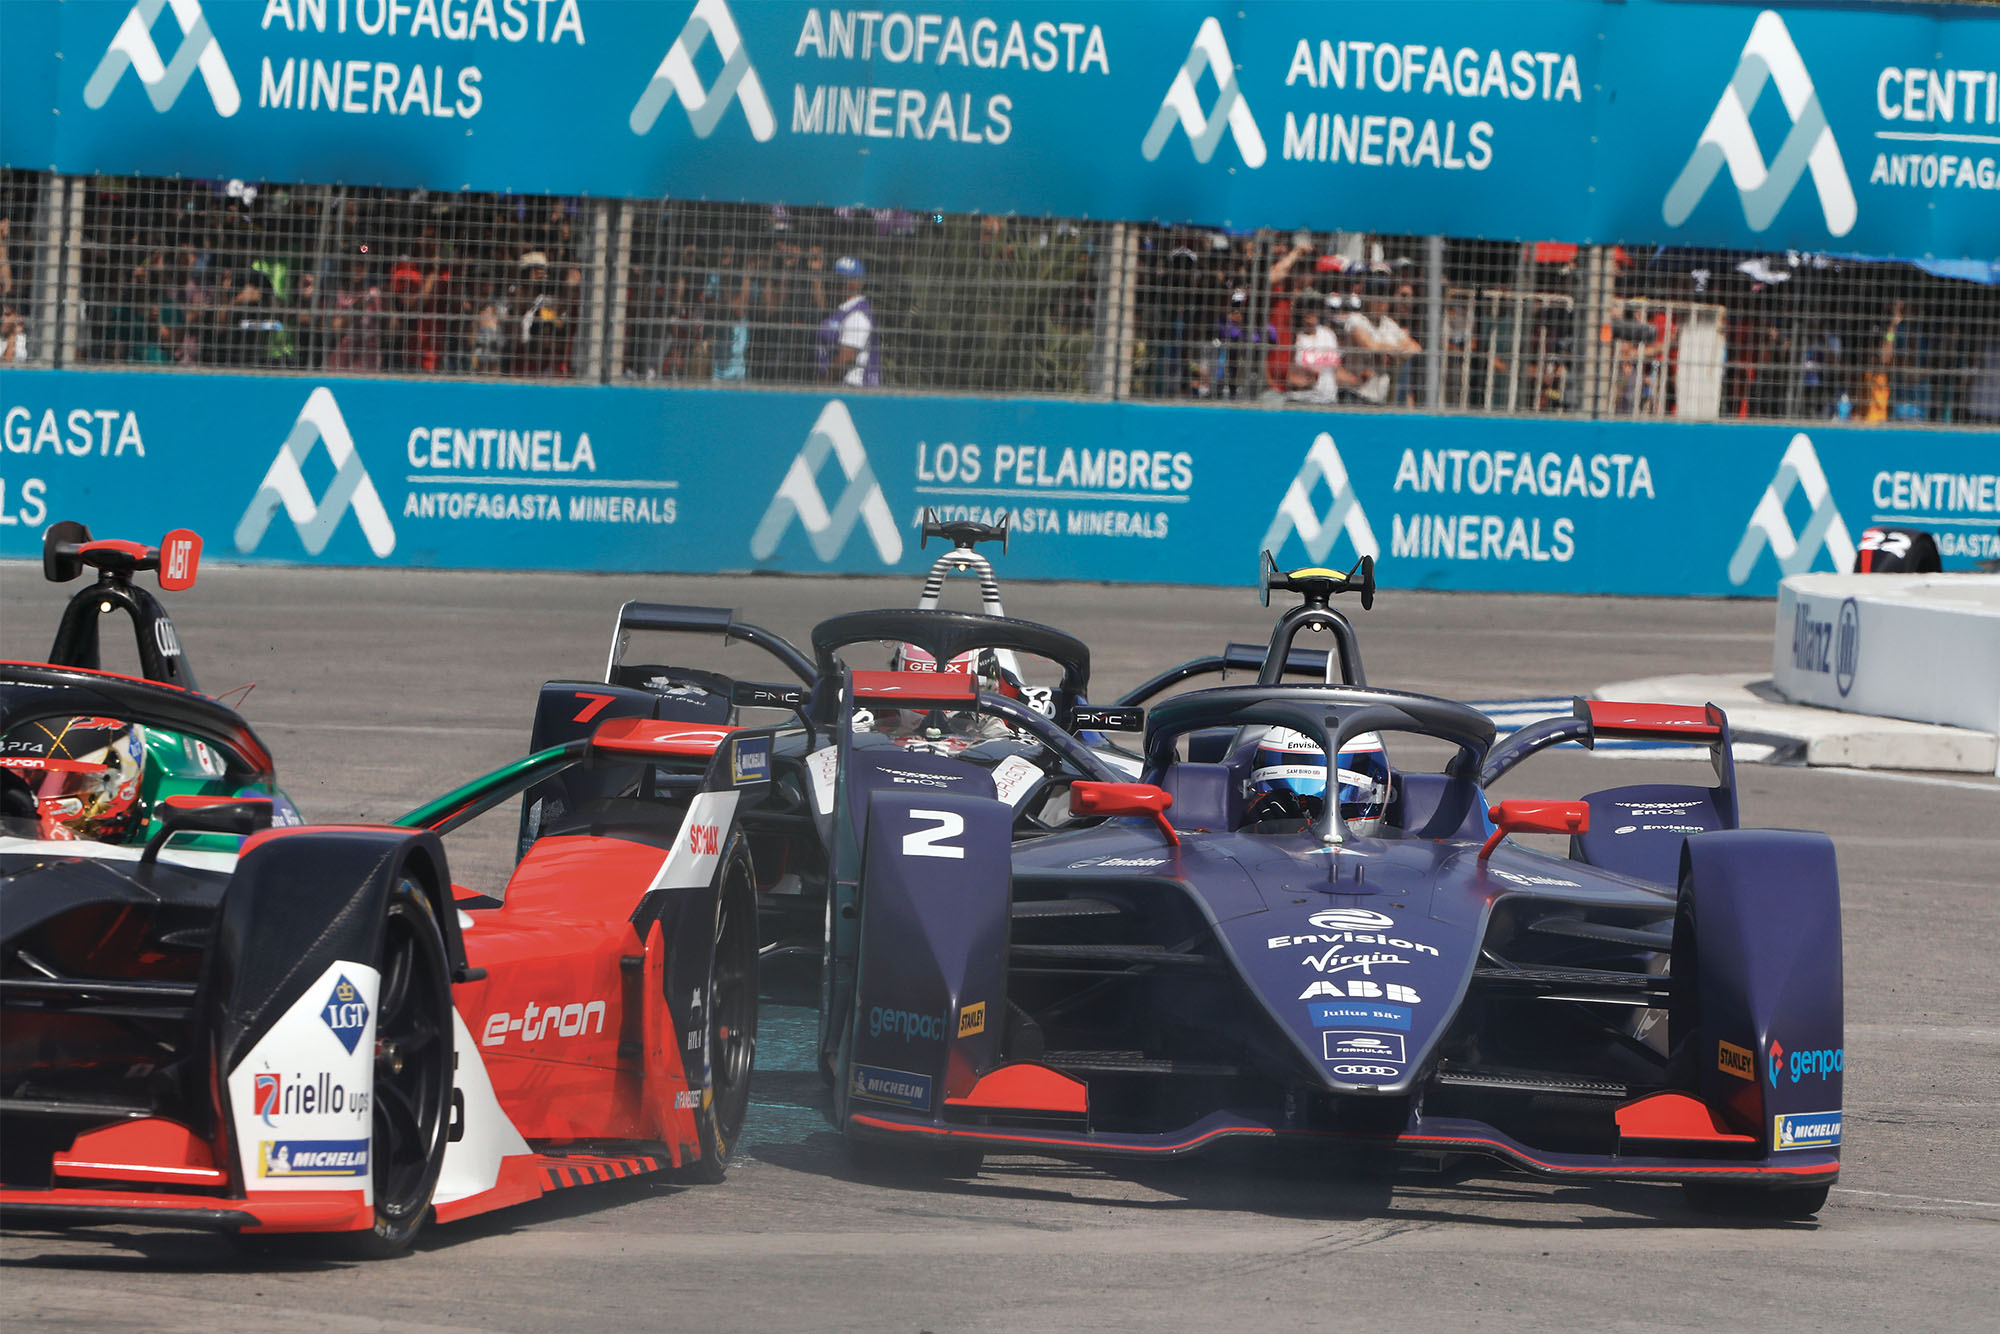 PARQUE O'HIGGINS CIRCUIT, CHILE - JANUARY 18: Daniel Abt (DEU), Audi Sport ABT Schaeffler, Audi e-tron FE06 leads Sam Bird (GBR), Envision Virgin Racing, Audi e-tron FE06 and Nico Müller (CHE), GEOX Dragon, Penske EV-4 at the start of the race during the Santiago E-prix at Parque O'Higgins Circuit on January 18, 2020 in Parque O'Higgins Circuit, Chile.